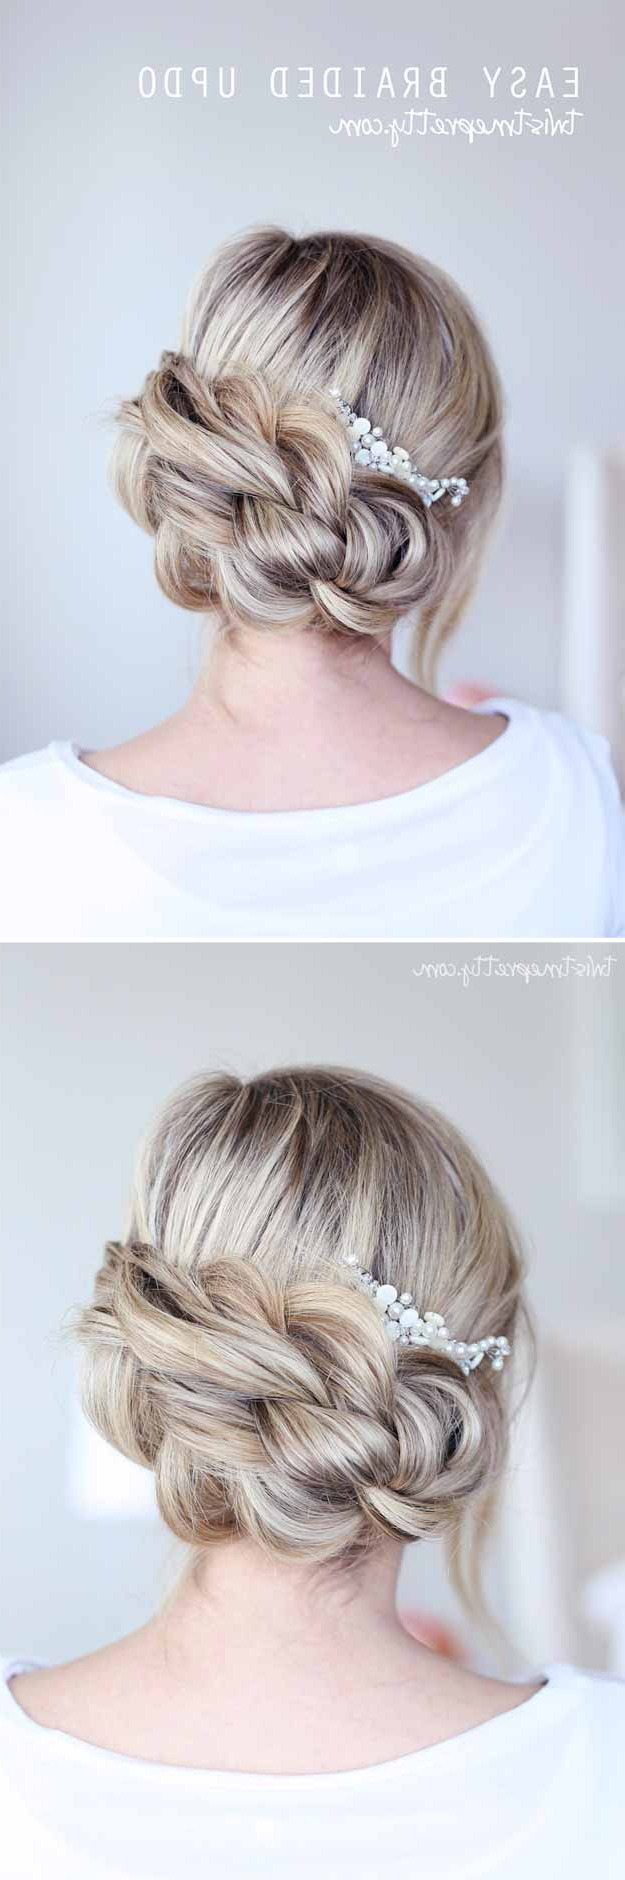 Most Recent Sleek And Simple Wedding Hairstyles In 31 Wedding Hairstyles For Long Hair – The Goddess (View 17 of 20)